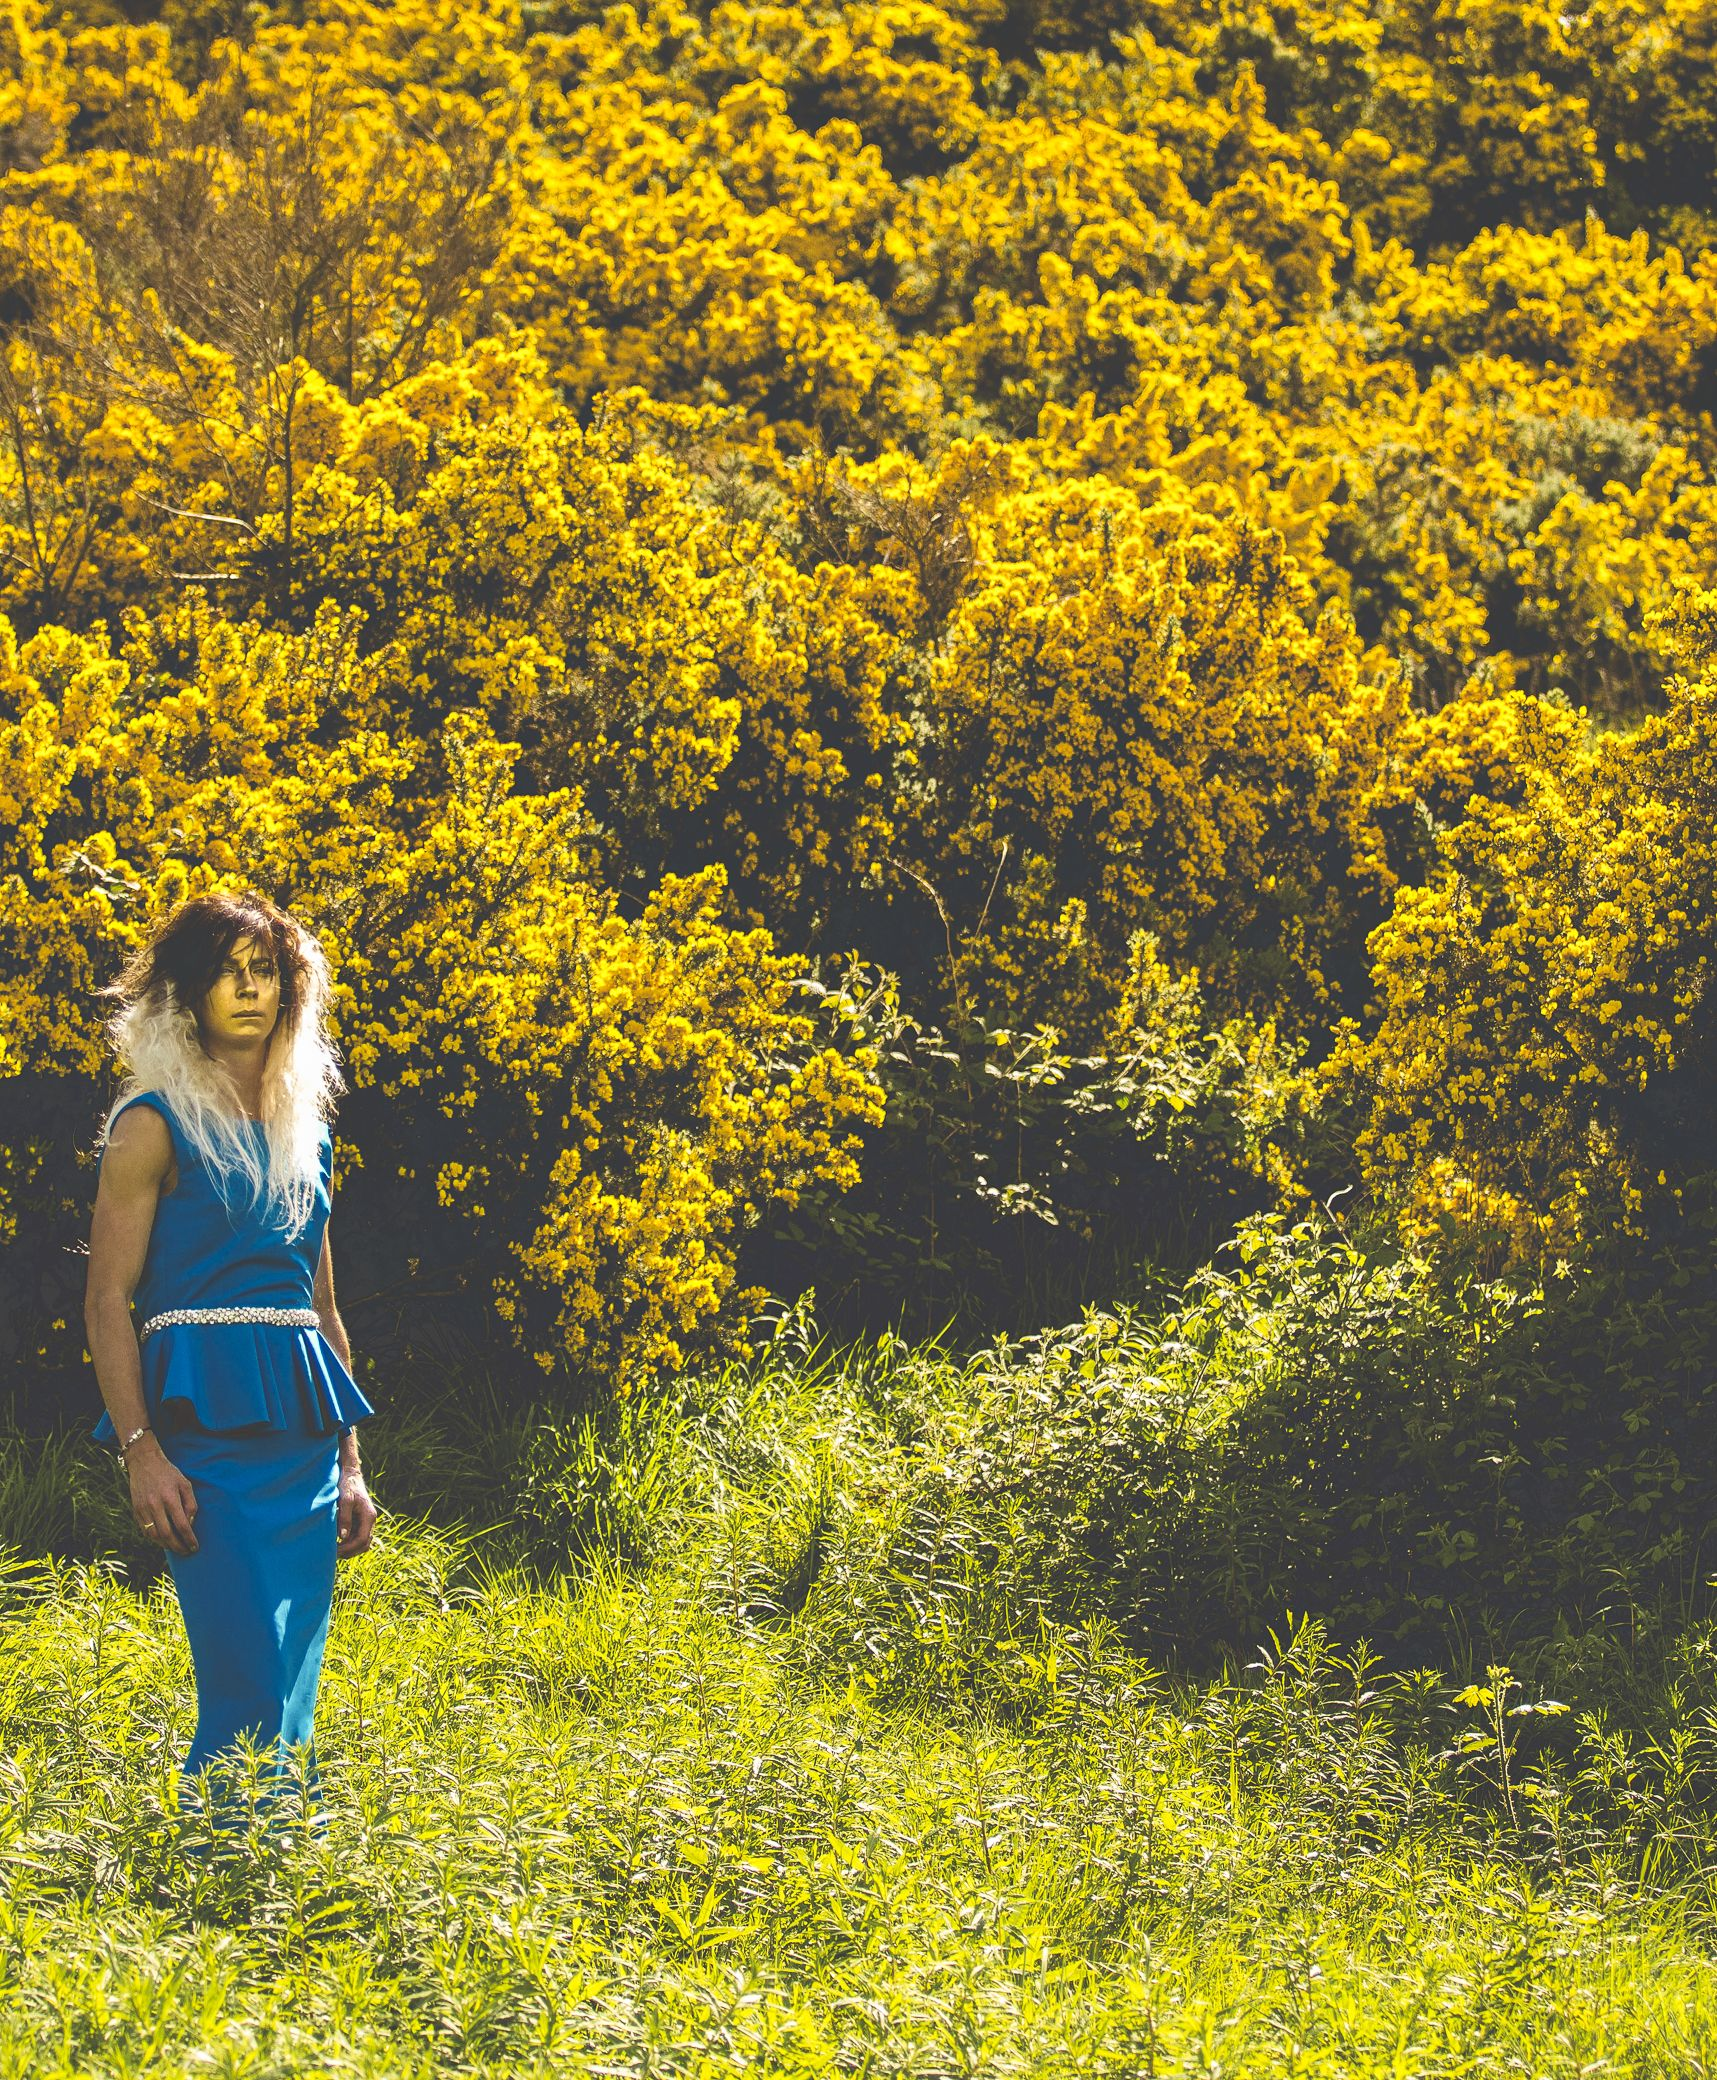 The incredible Eve Muirhead wearing Carolyn Baxter in fields of gold for wecrave.it 's Racy issue. Shot by Seb Singh, styled and directed by Lynne McCrossan, hair and make-up by Molly Jane Sheridan.  #wecrave real role models! This athlete is an inspiration. #commonwealthgames2014 she looks like a lioness here. #love